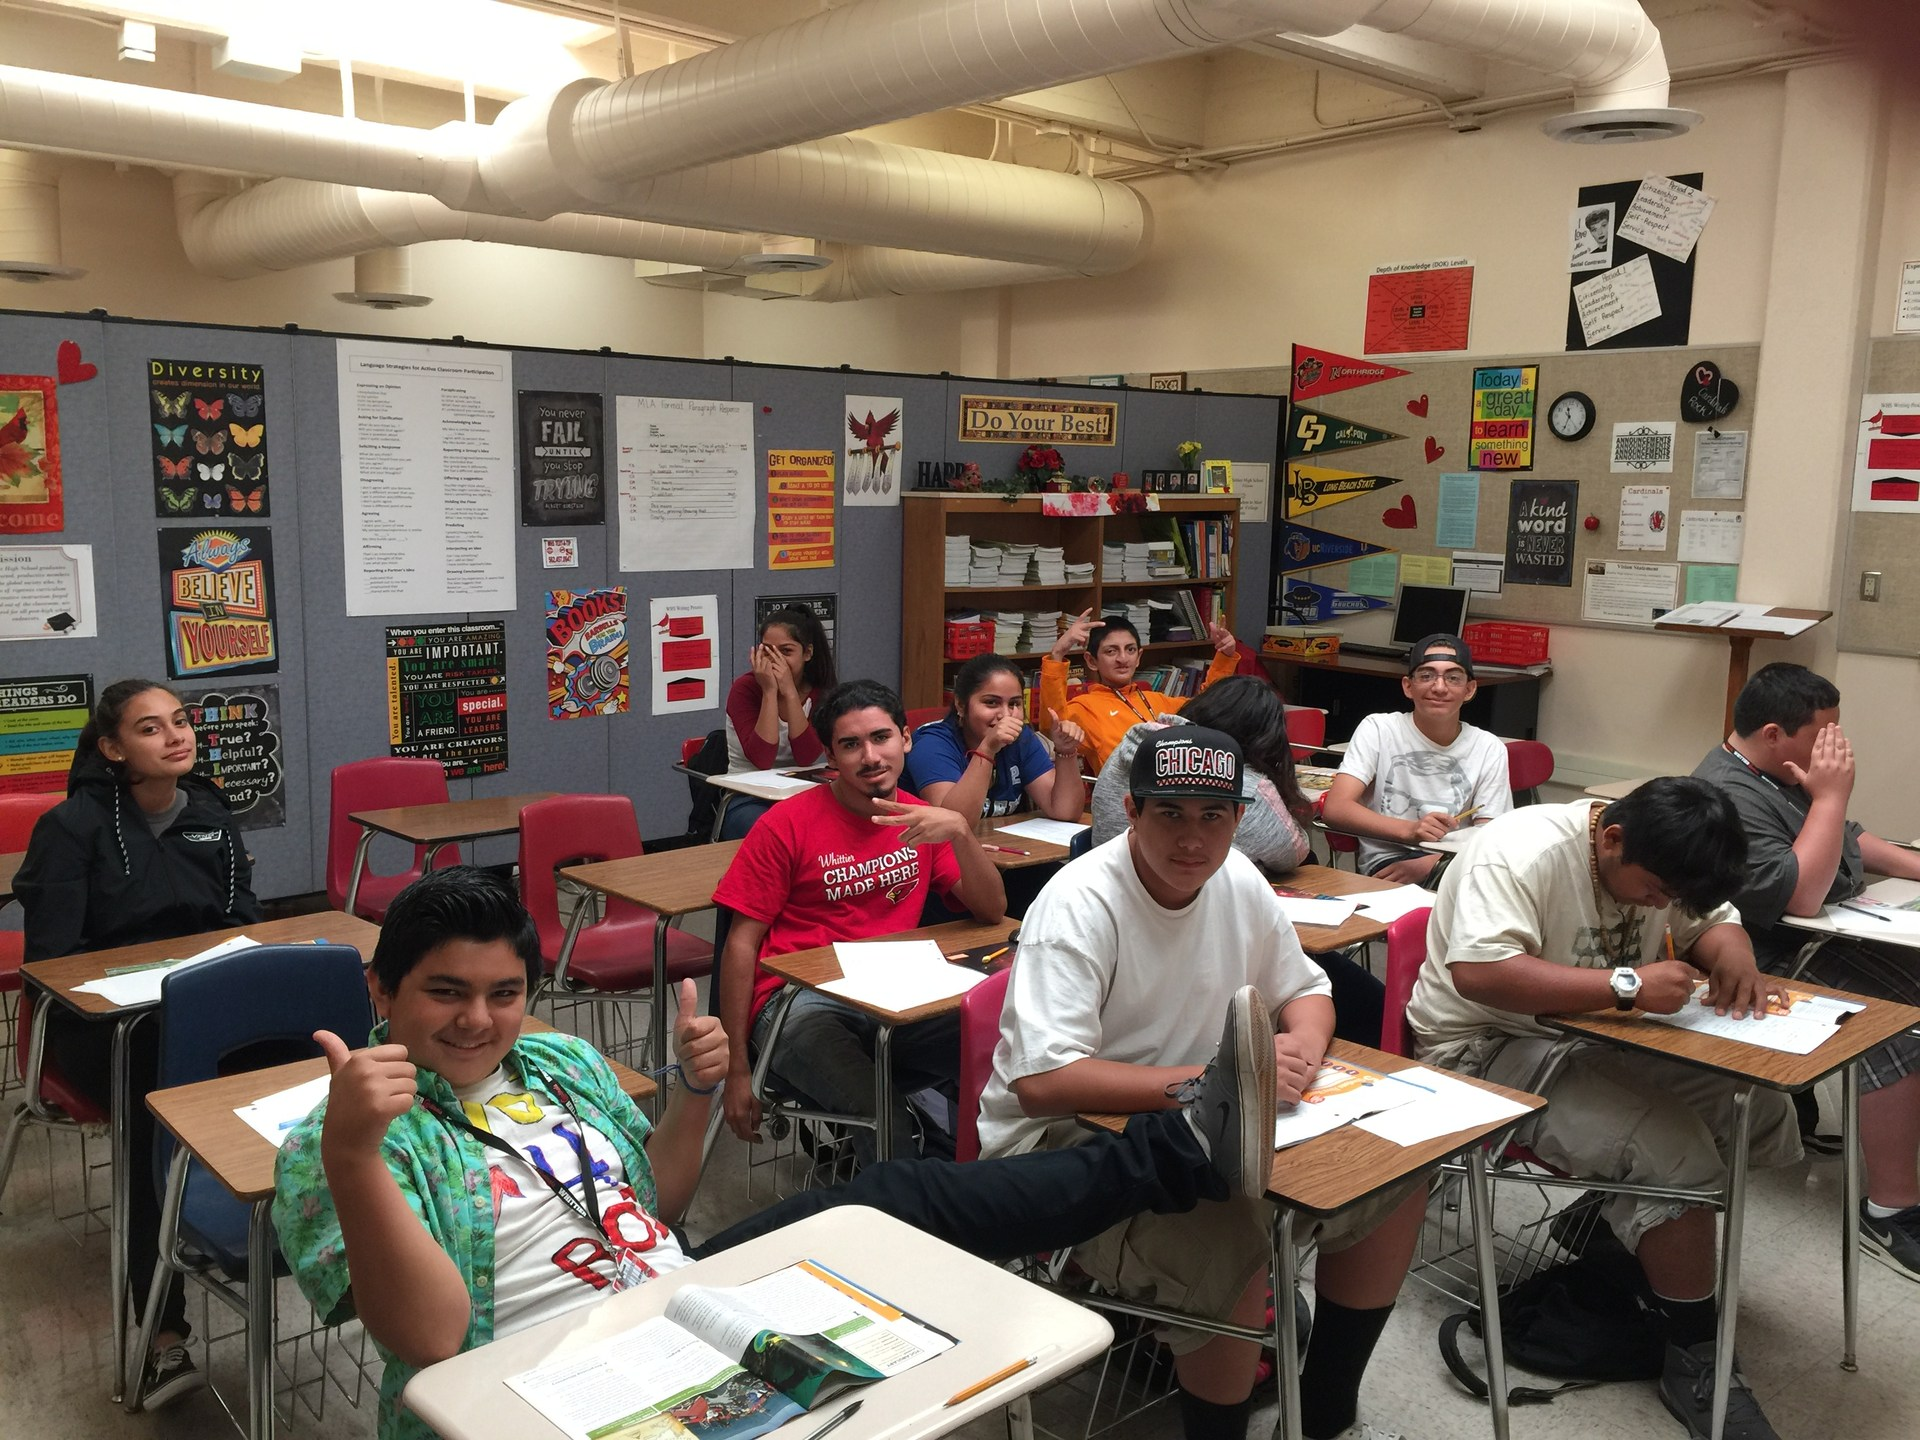 Ms. Sexton's 4th period reading class